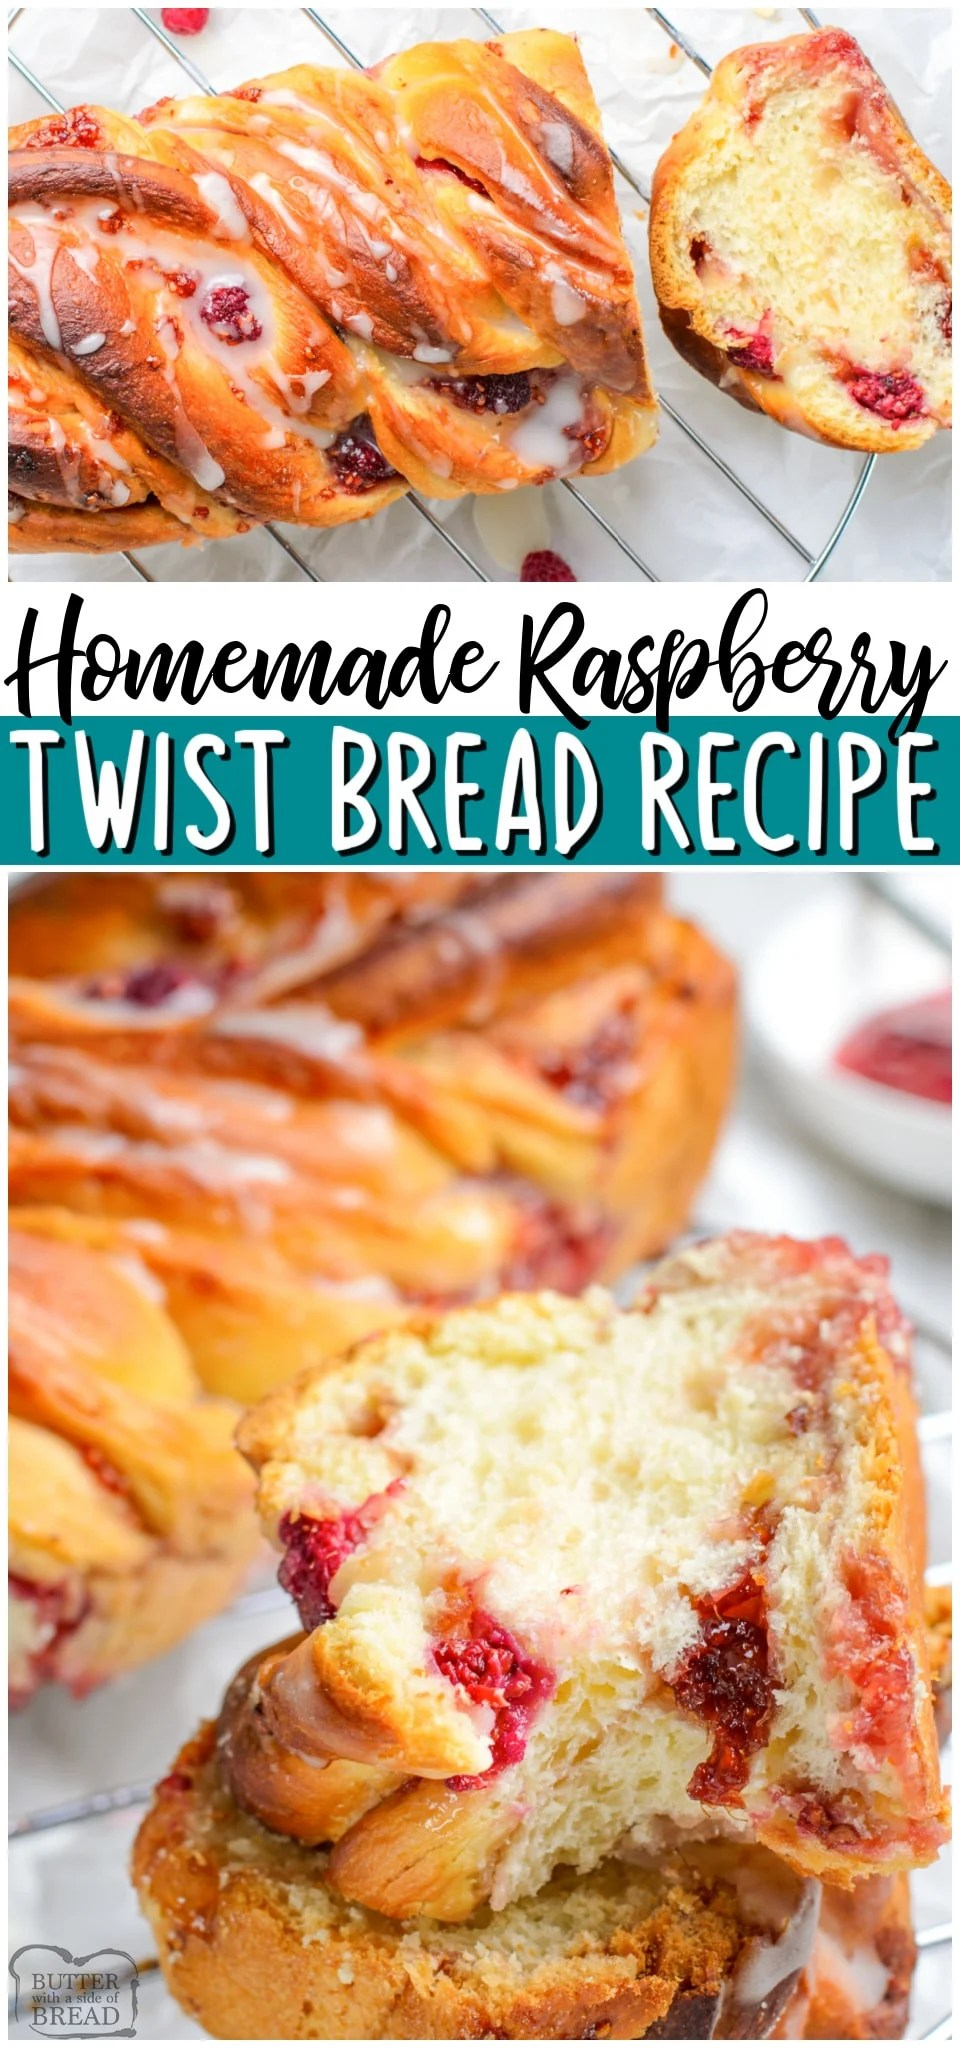 Raspberry Twist Bread is a delicious loaf of homemade sweet bread swirled with raspberry jam. Served with lemon icing and brioche-style dough this bread is perfect for breakfast or dessert! #bread #raspberry #twist #baking #breadrecipe #sweetbread from BUTTER WITH A SIDE OF BREAD